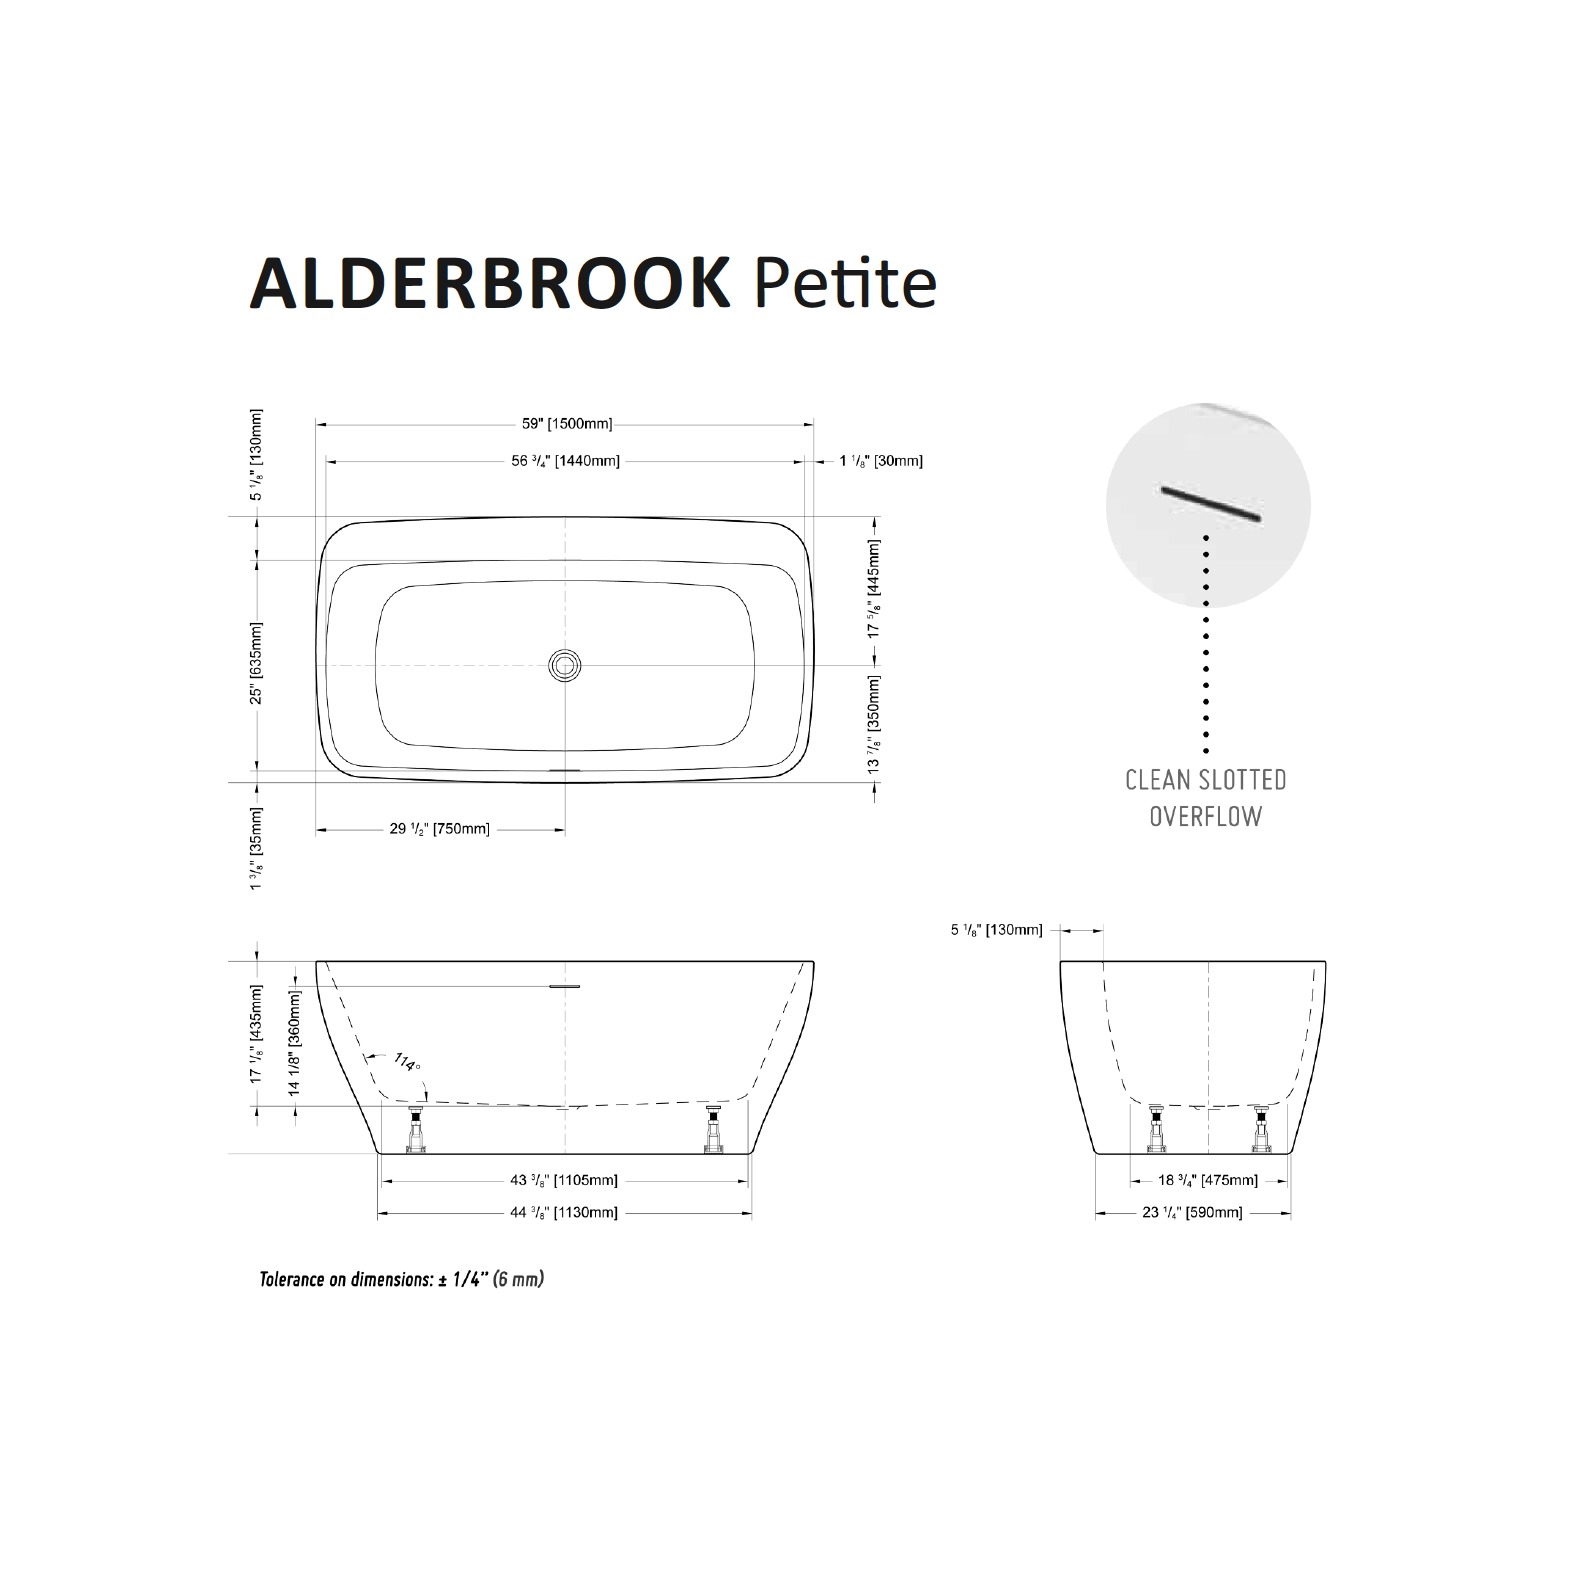 Alderbrook Petite Tub Specifications